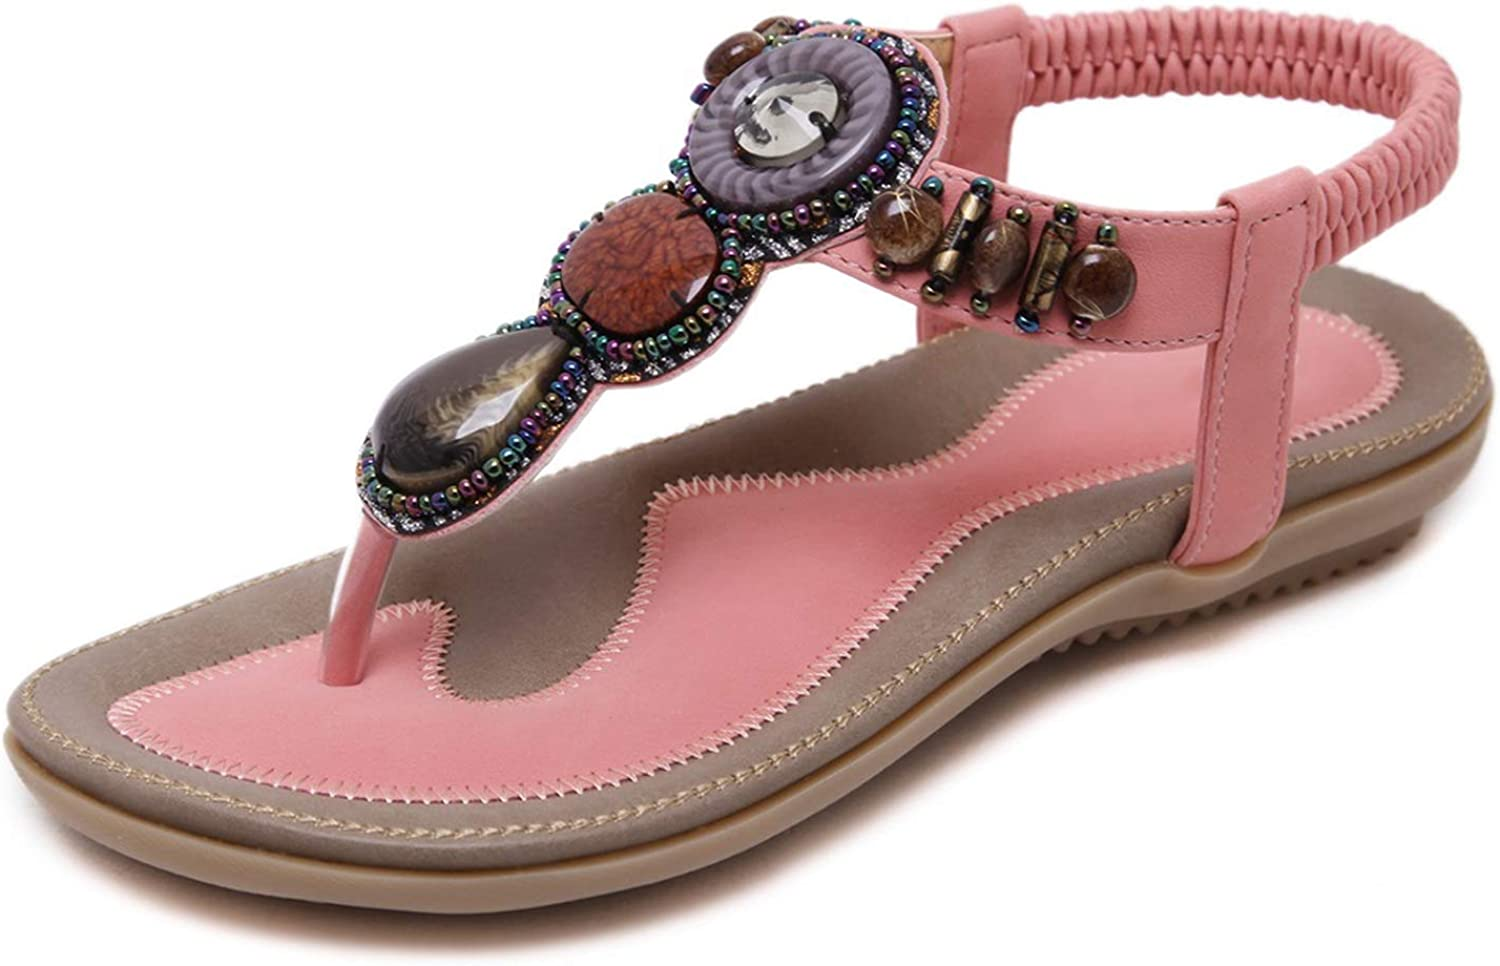 Fashion Leisure Women Sandals t-Tied Solid color Leisure Ethnic Leisure Summer Sandals 34-45